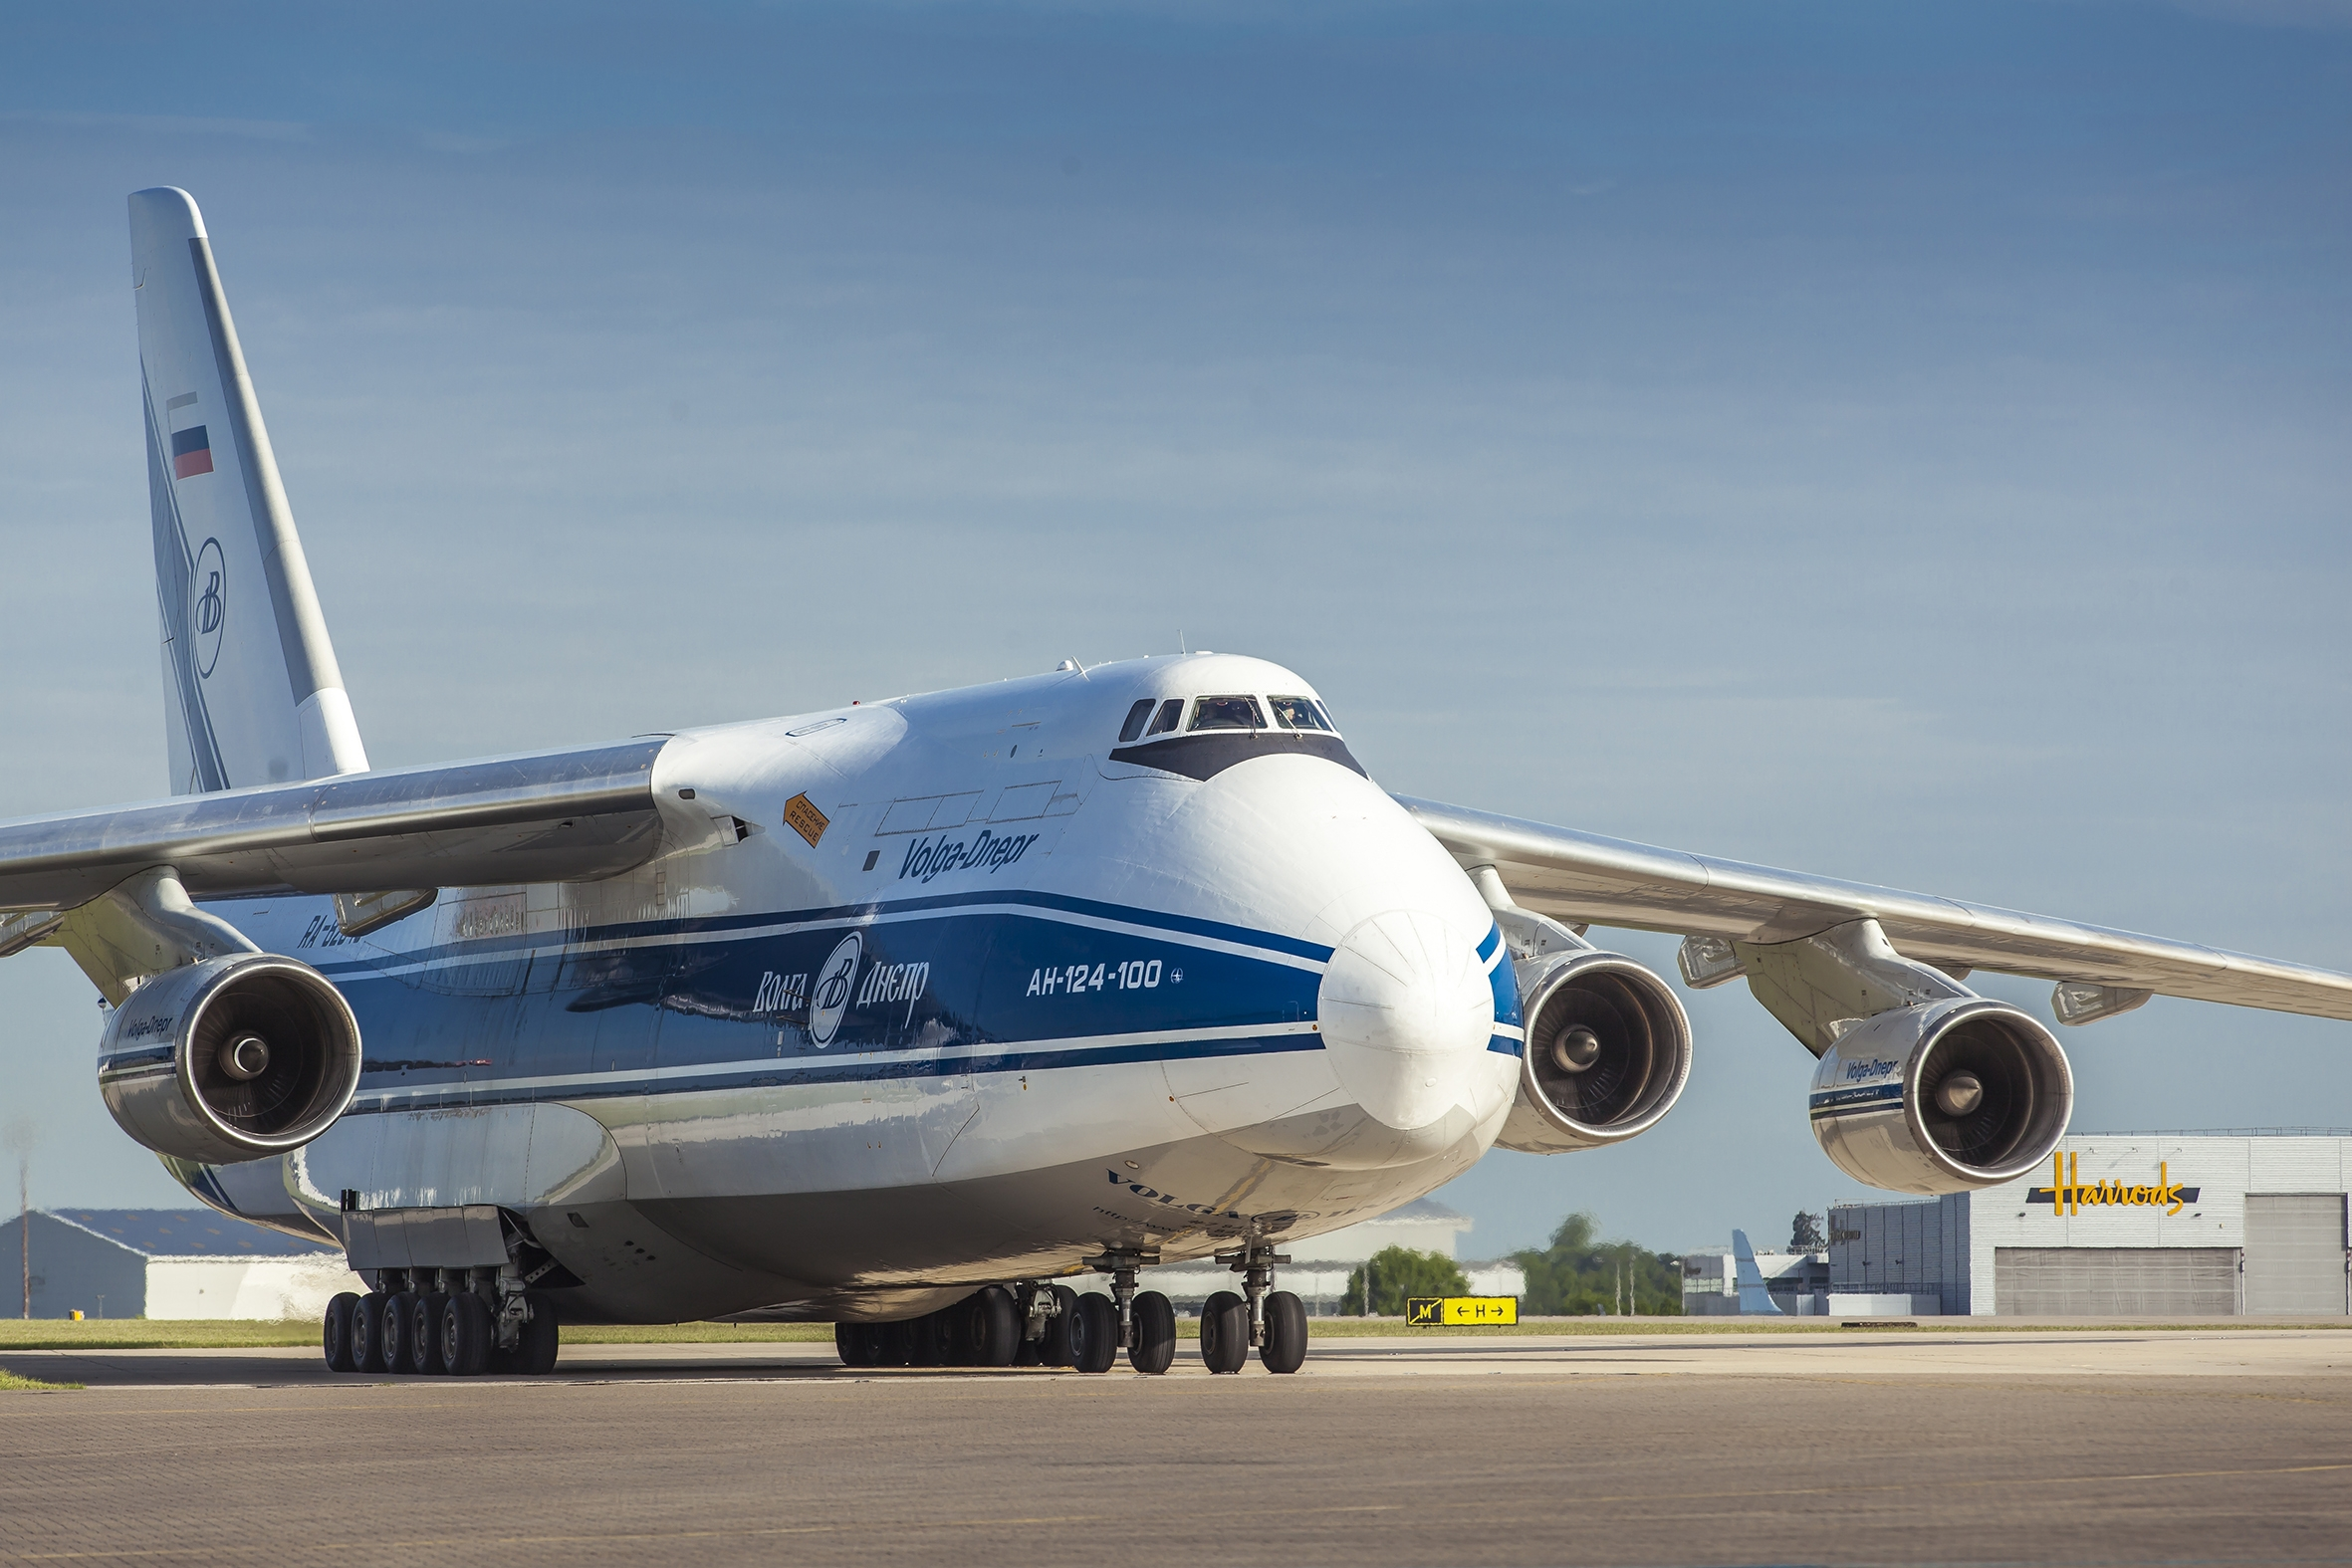 Volga-Dnepr Group restructures in light of Covid-19